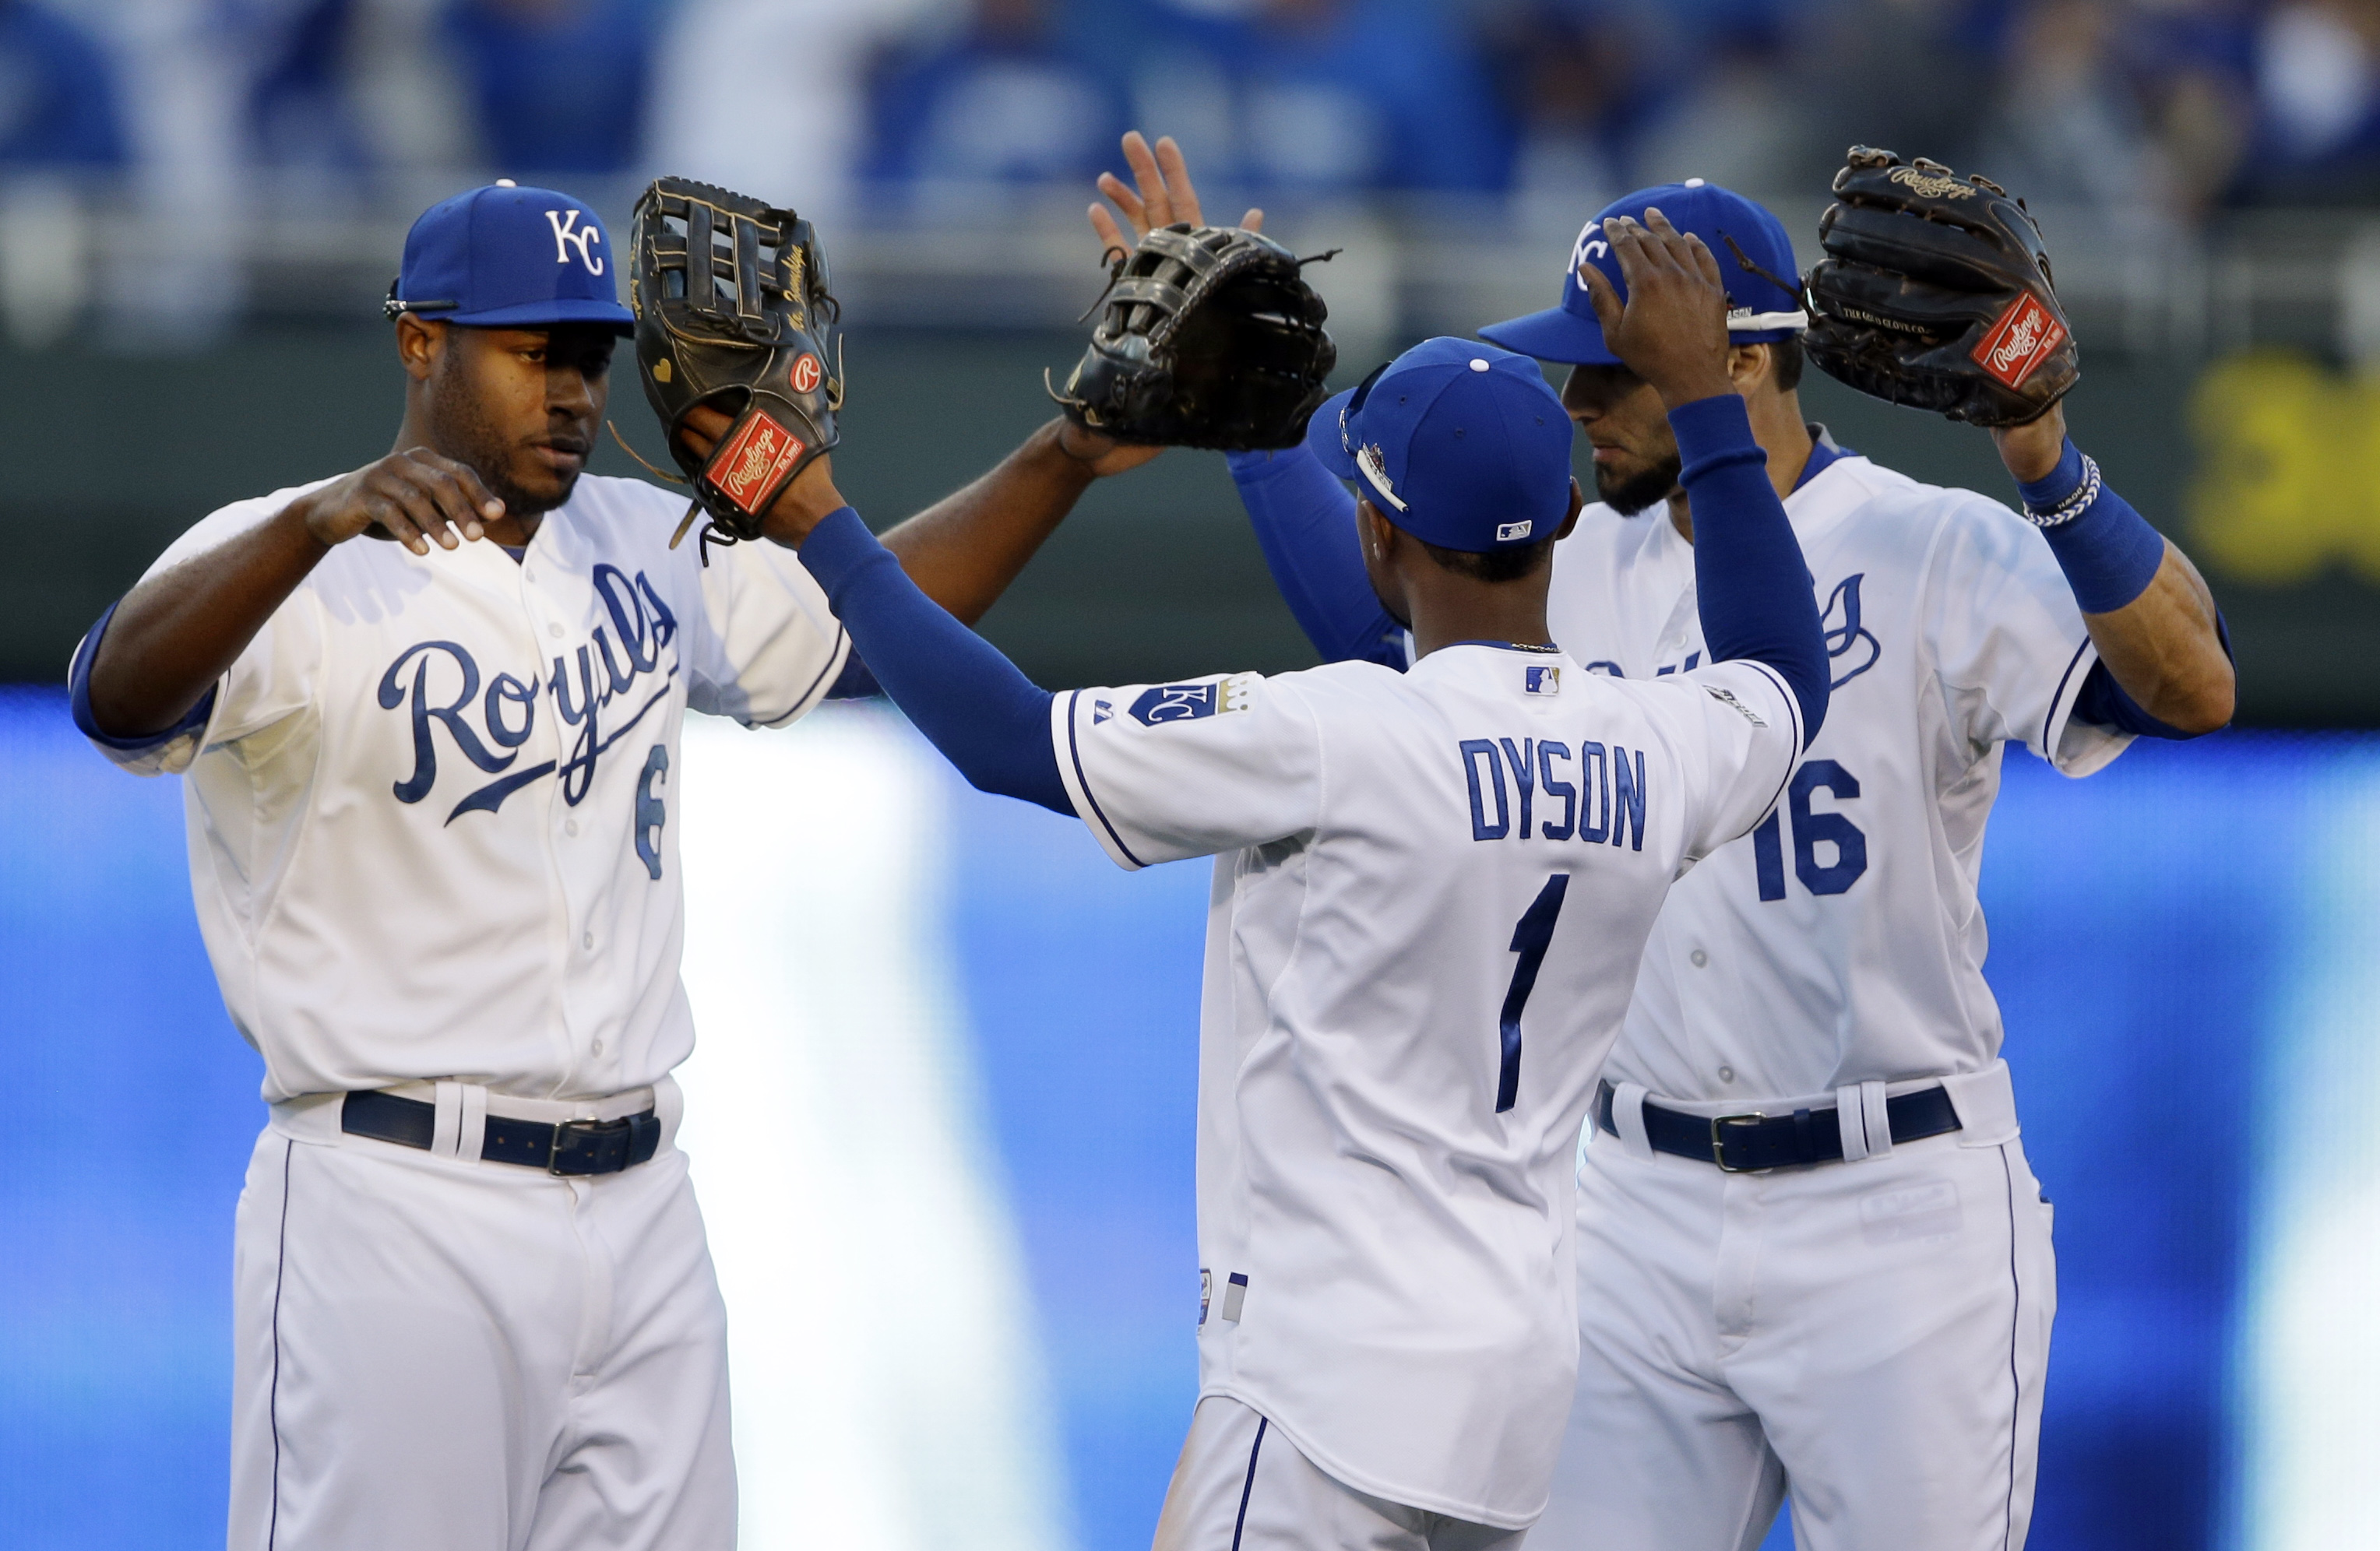 Kansas City Royals players, from left, Lorenzo Cain, Jarrod Dyson and Paulo Orlando celebrate after their 5-4 victory over the Houston Astros in Game 2 of baseball's American League Division Series, Friday, Oct. 9, 2015, in Kansas City, Mo. (AP Photo/Orli